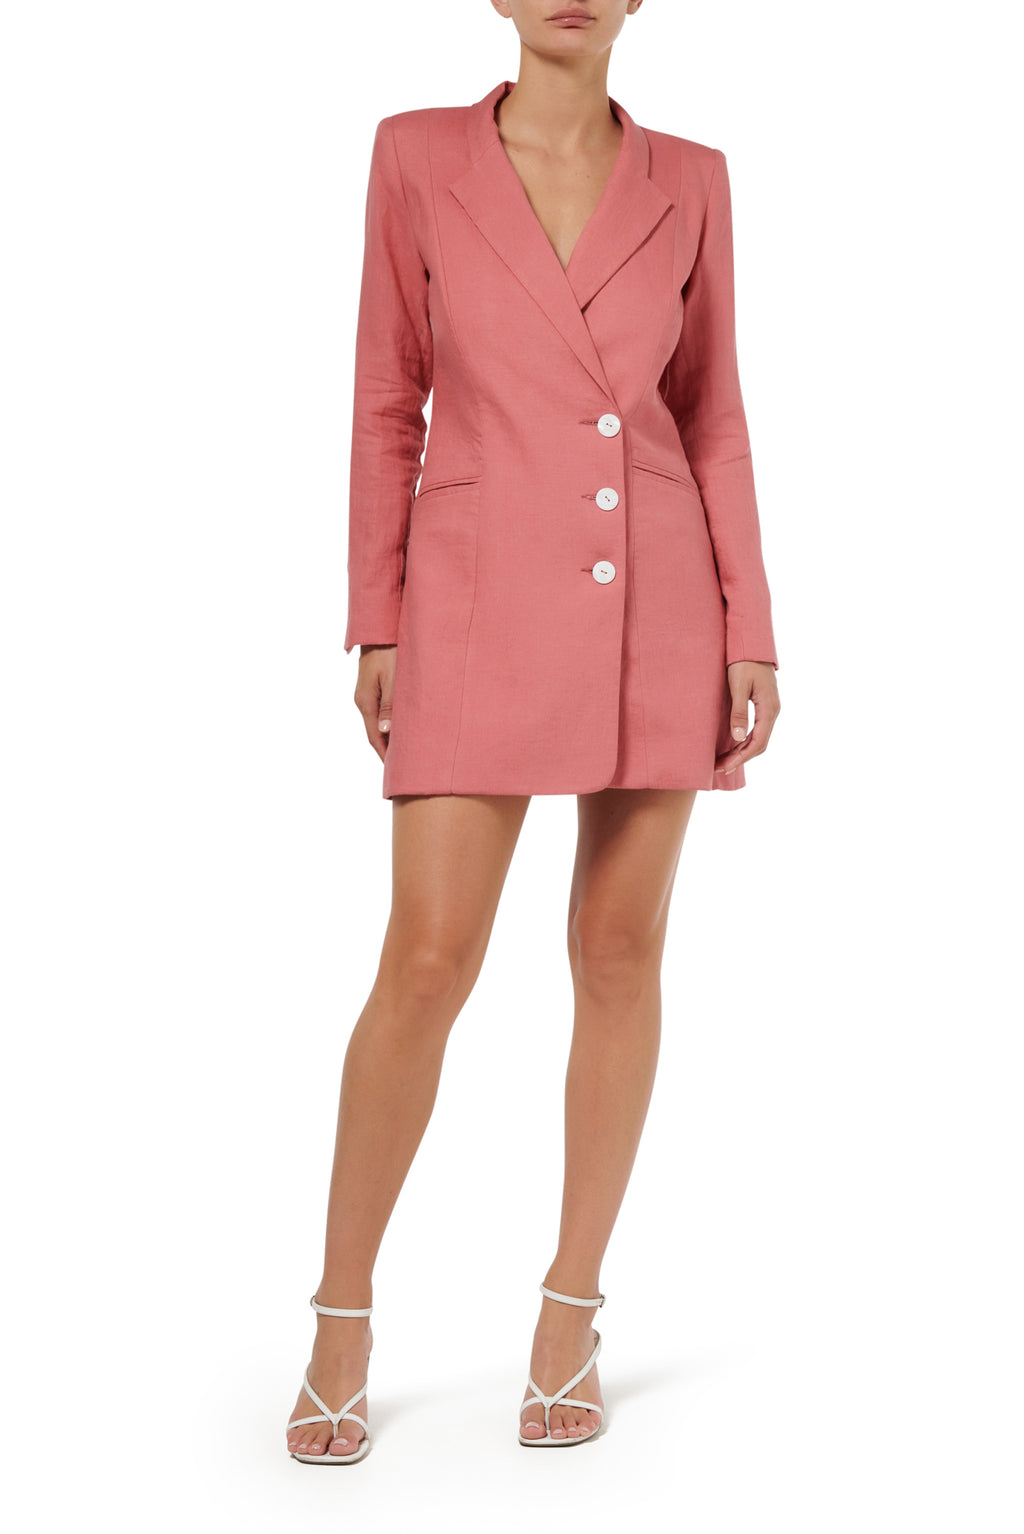 Freya Jacket Dress - Peach - SOLD OUT